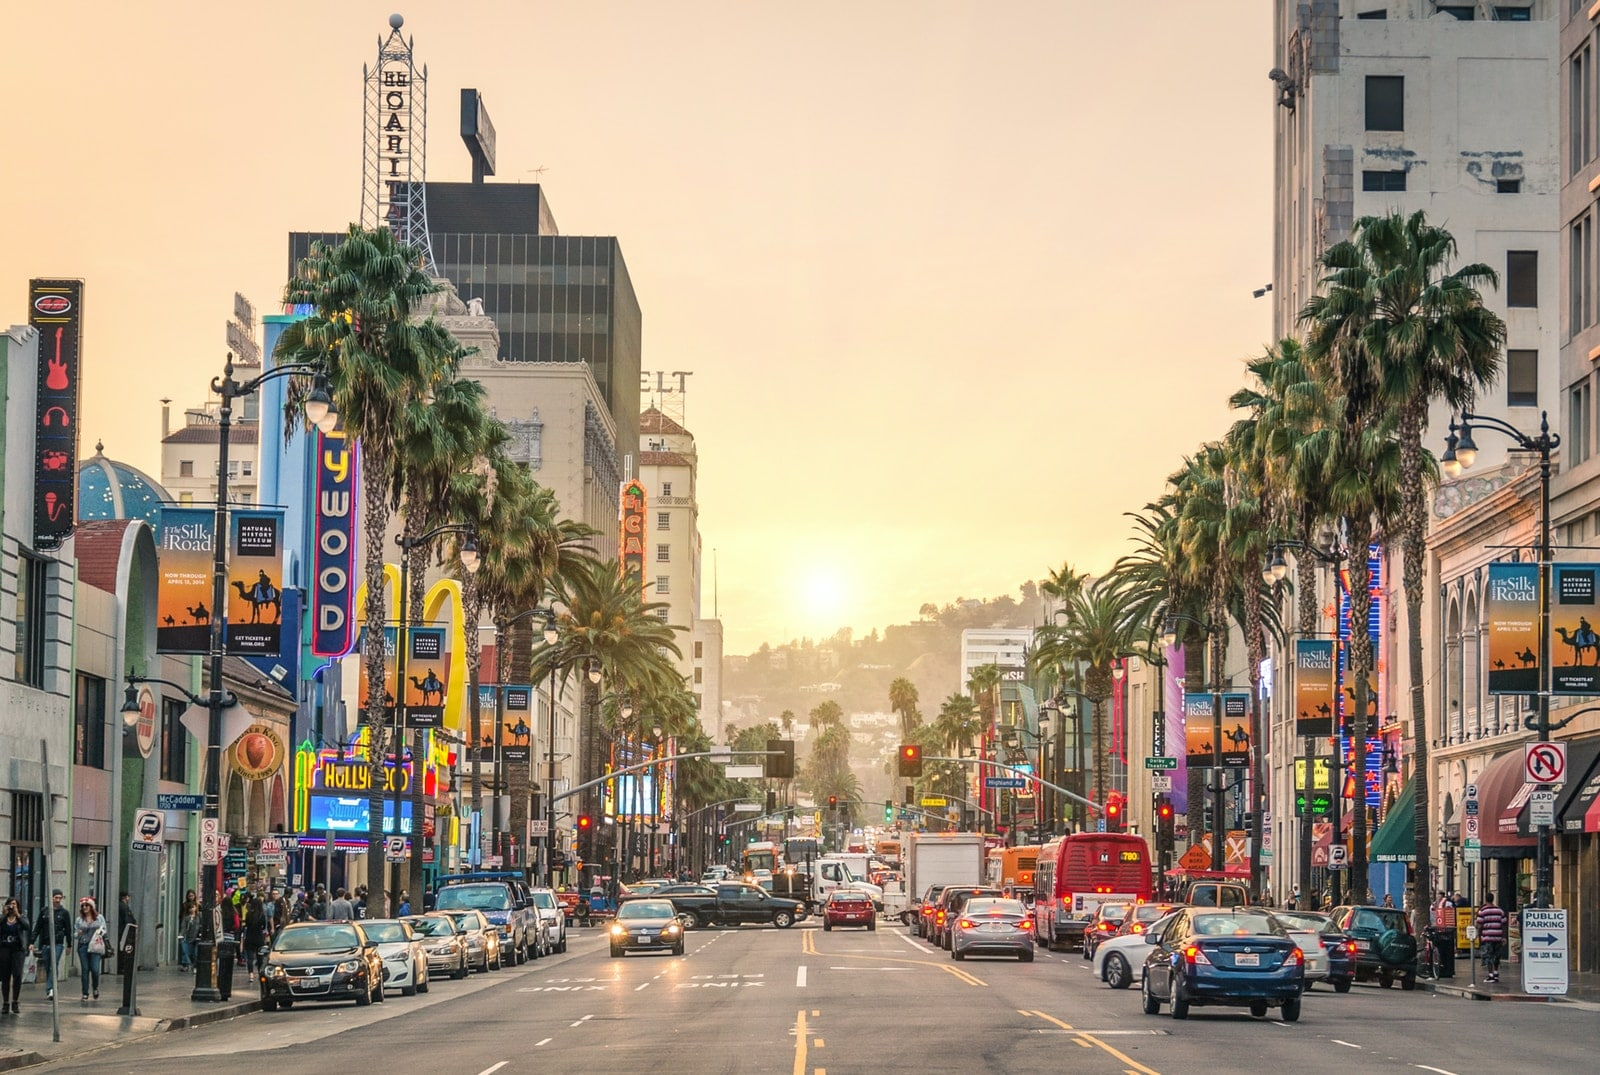 The Fundamentals of Forming an LLC in California